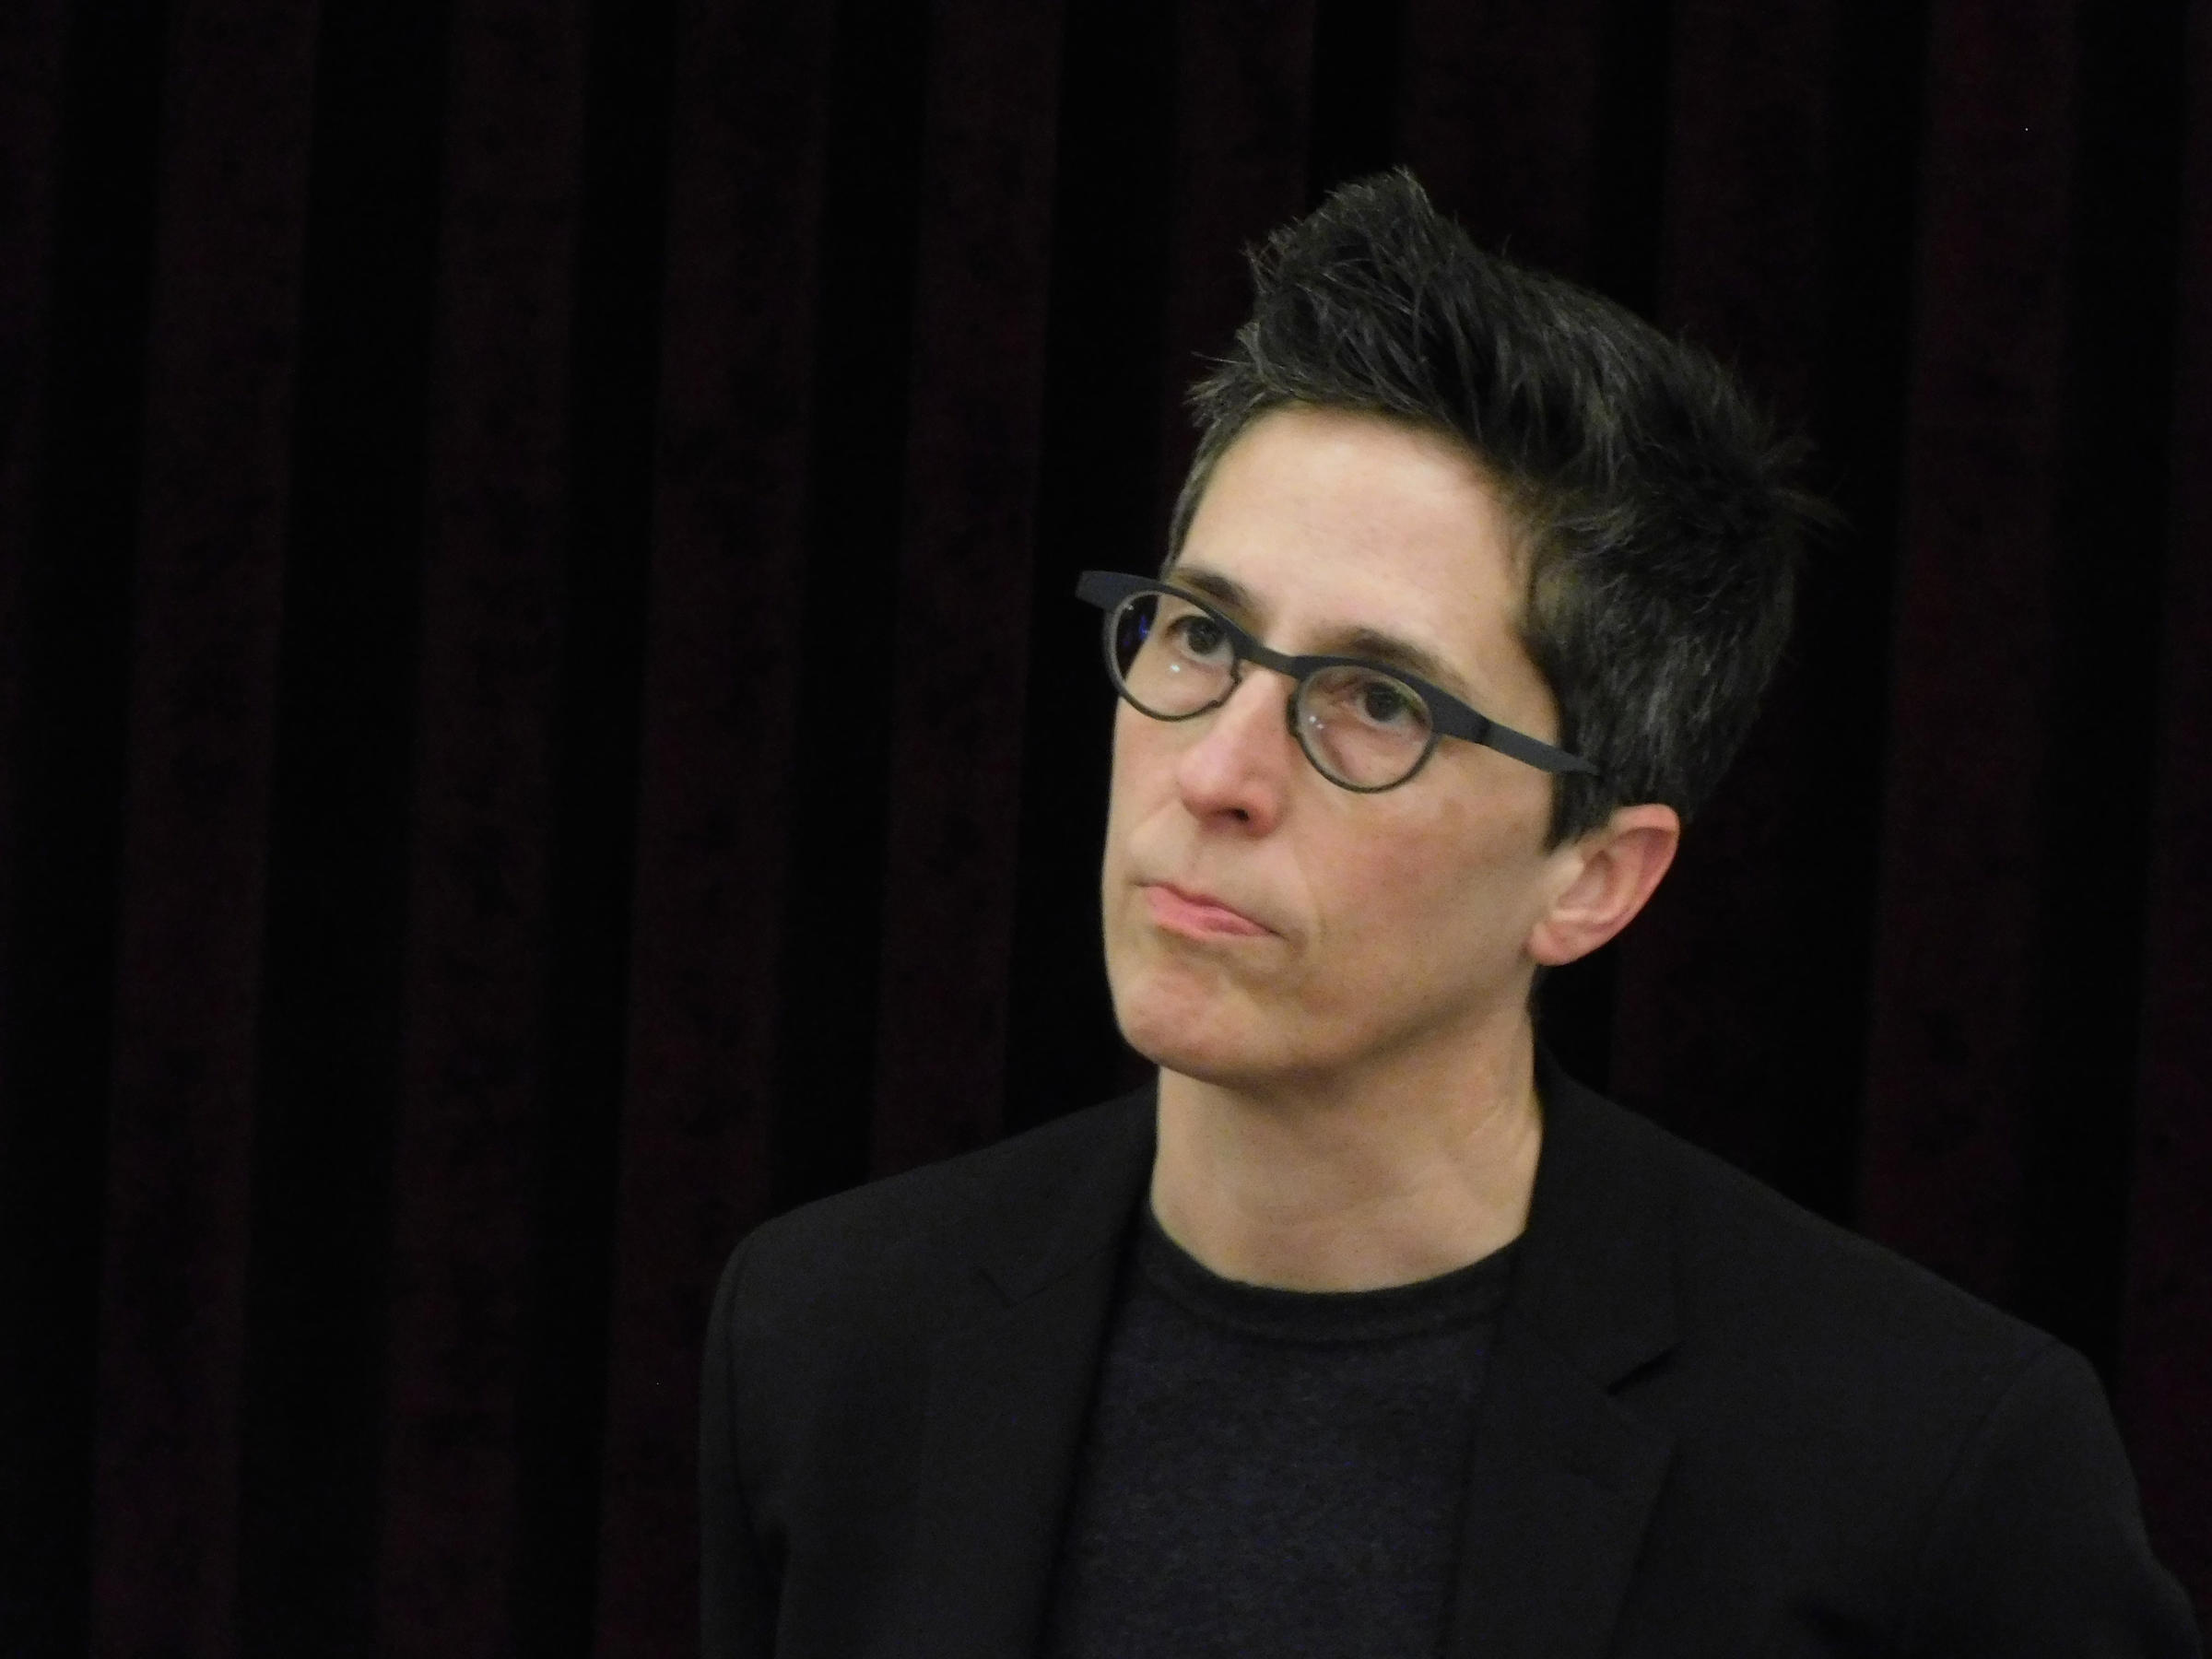 fun home alison bechdel Alison bechdel (born september 10, 1960) is an american cartoonist originally best known for the long-running comic strip dykes to watch out for, in 2006 she became a best-selling and critically acclaimed author with her graphic memoir fun home.